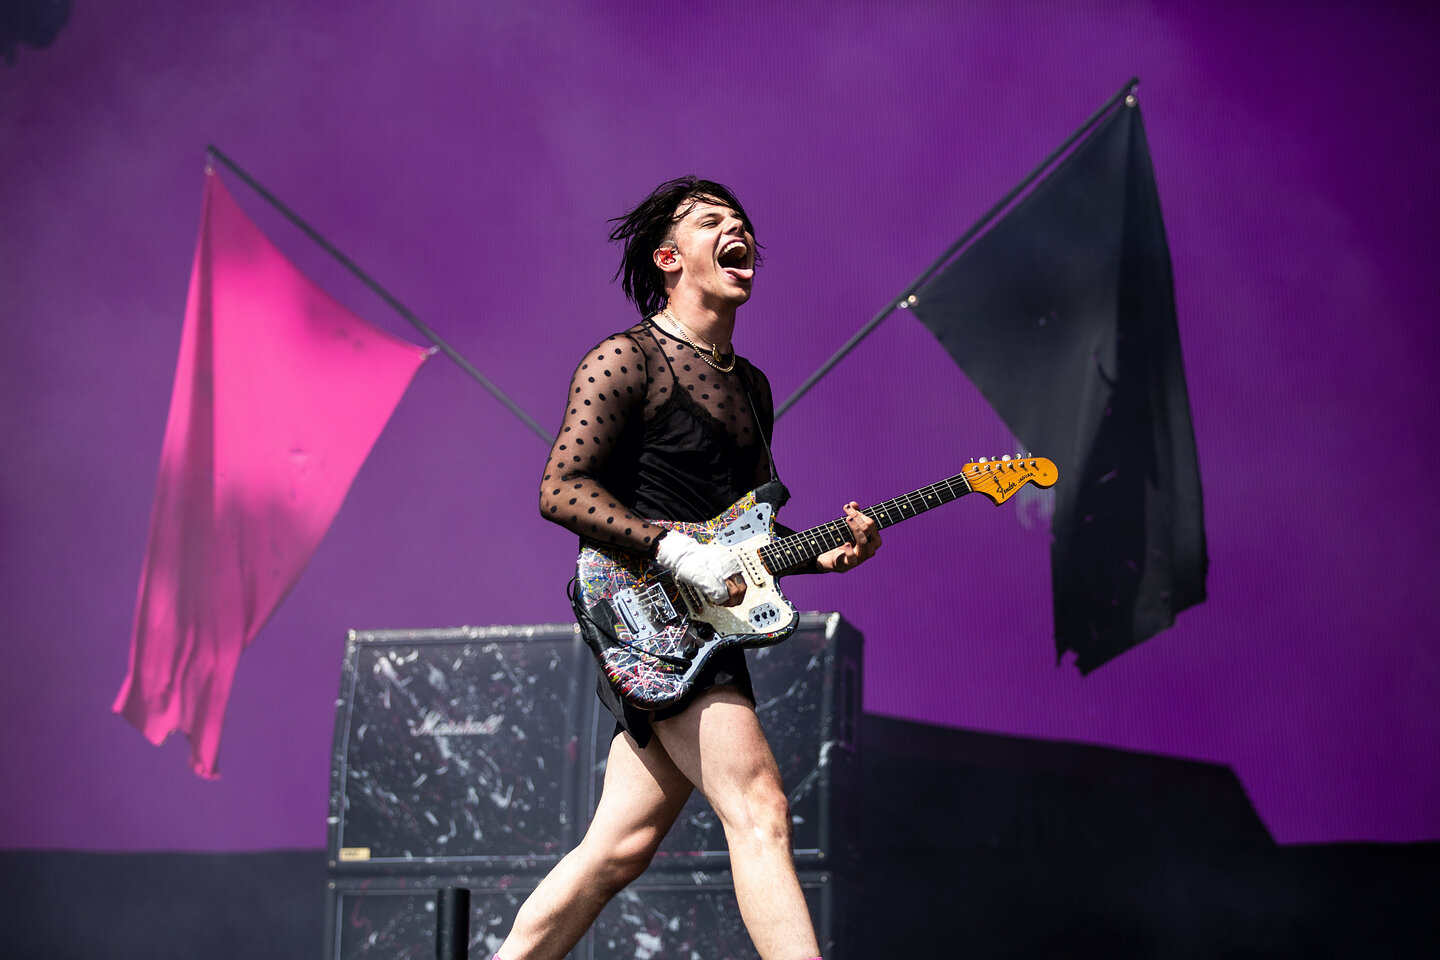 Yungblud in concert, Leeds Festival - 24 August 2019